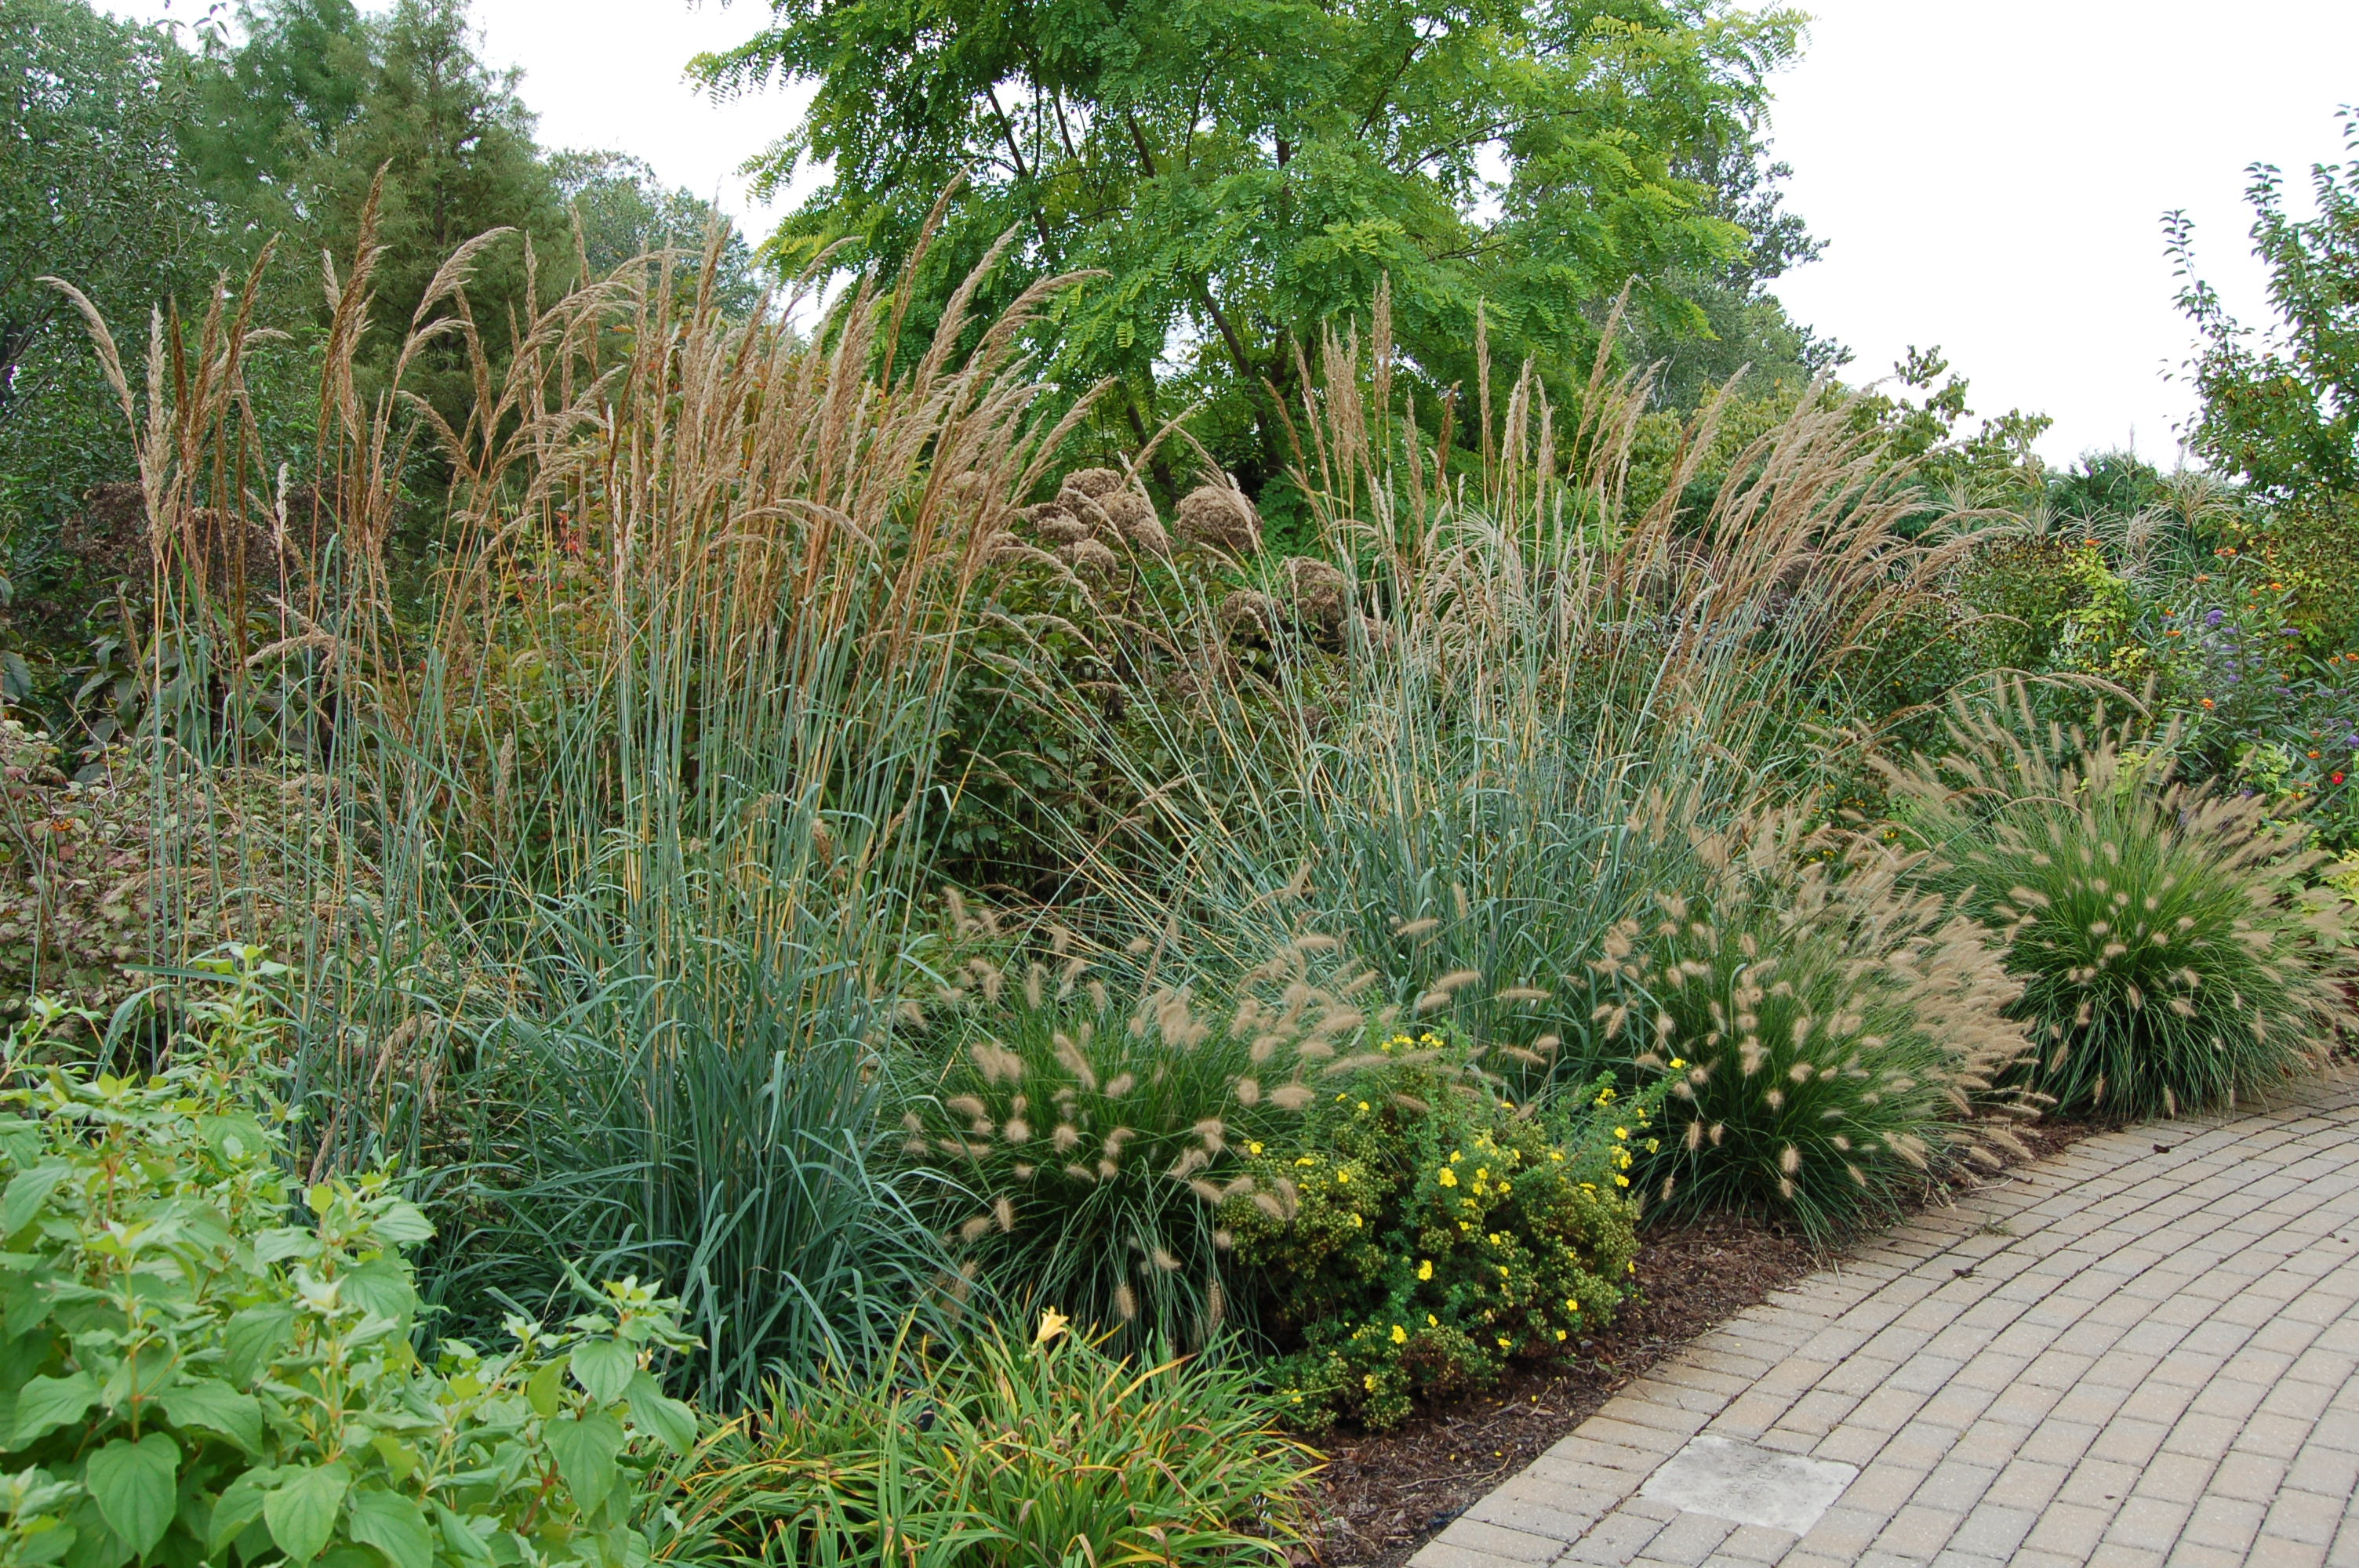 10 favorite ornamental grasses for midwest landscaping for Landscaping ideas using ornamental grasses